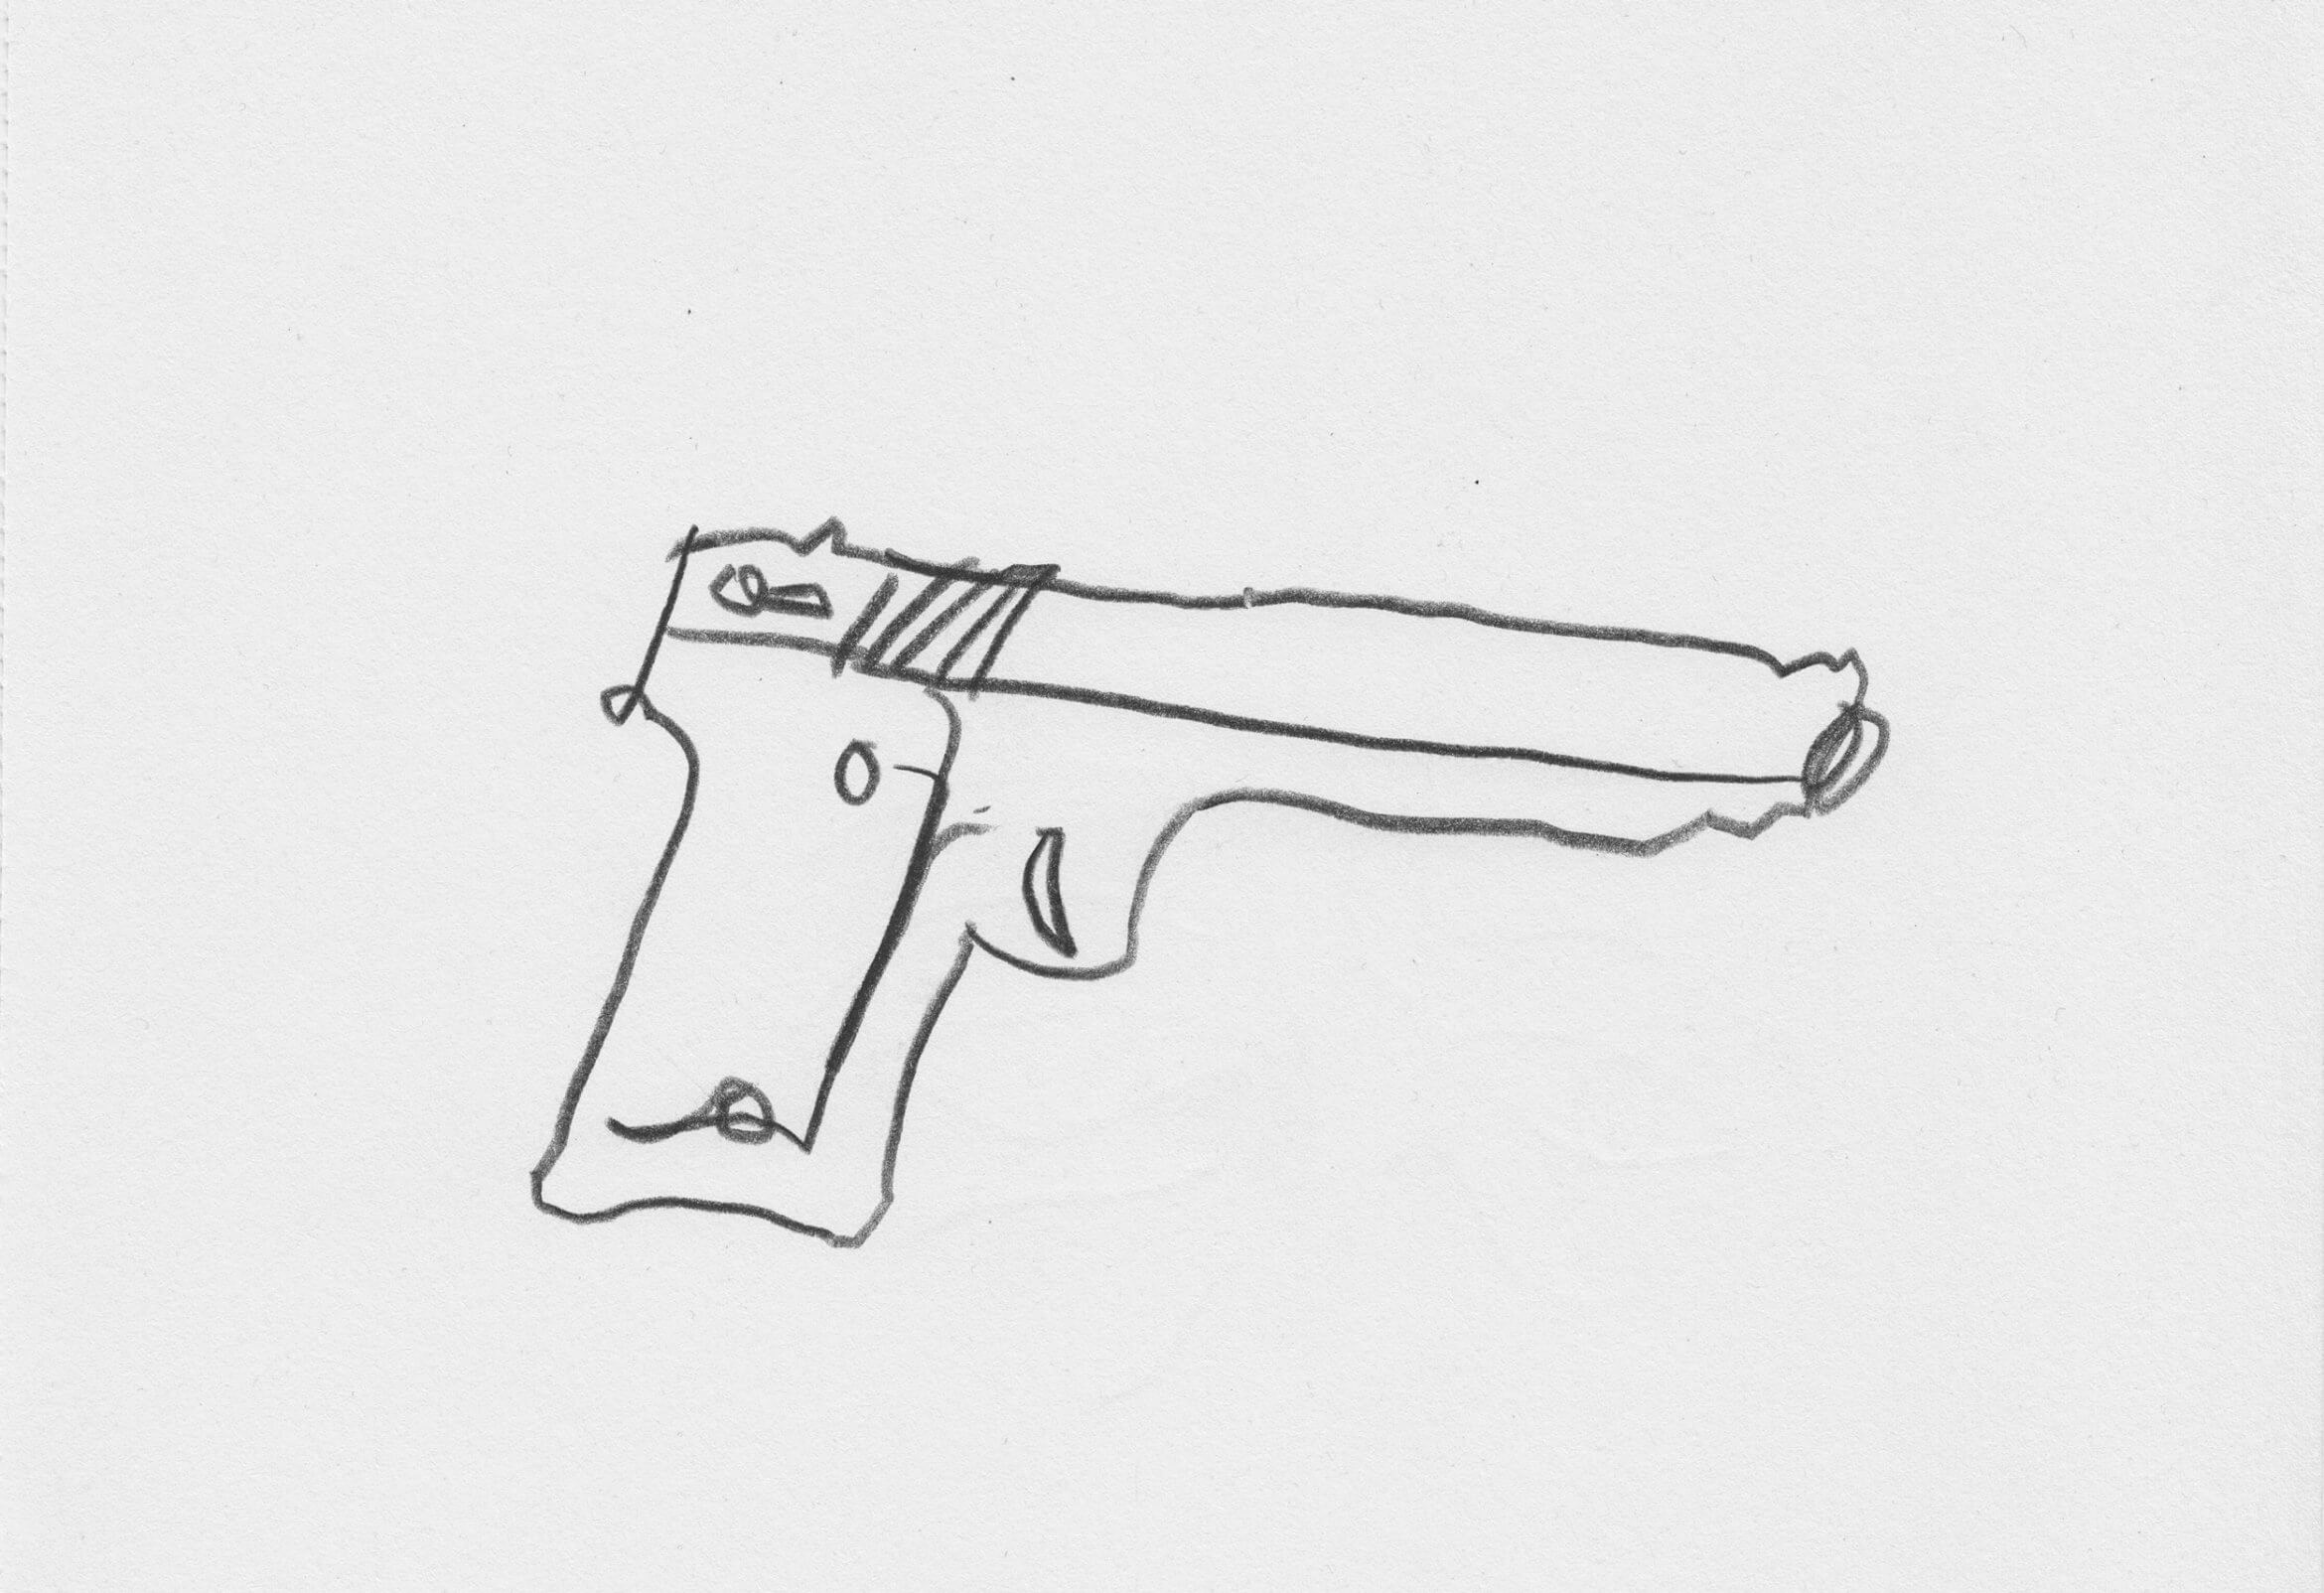 Daniel_Angermann_Pistole_Original Gun